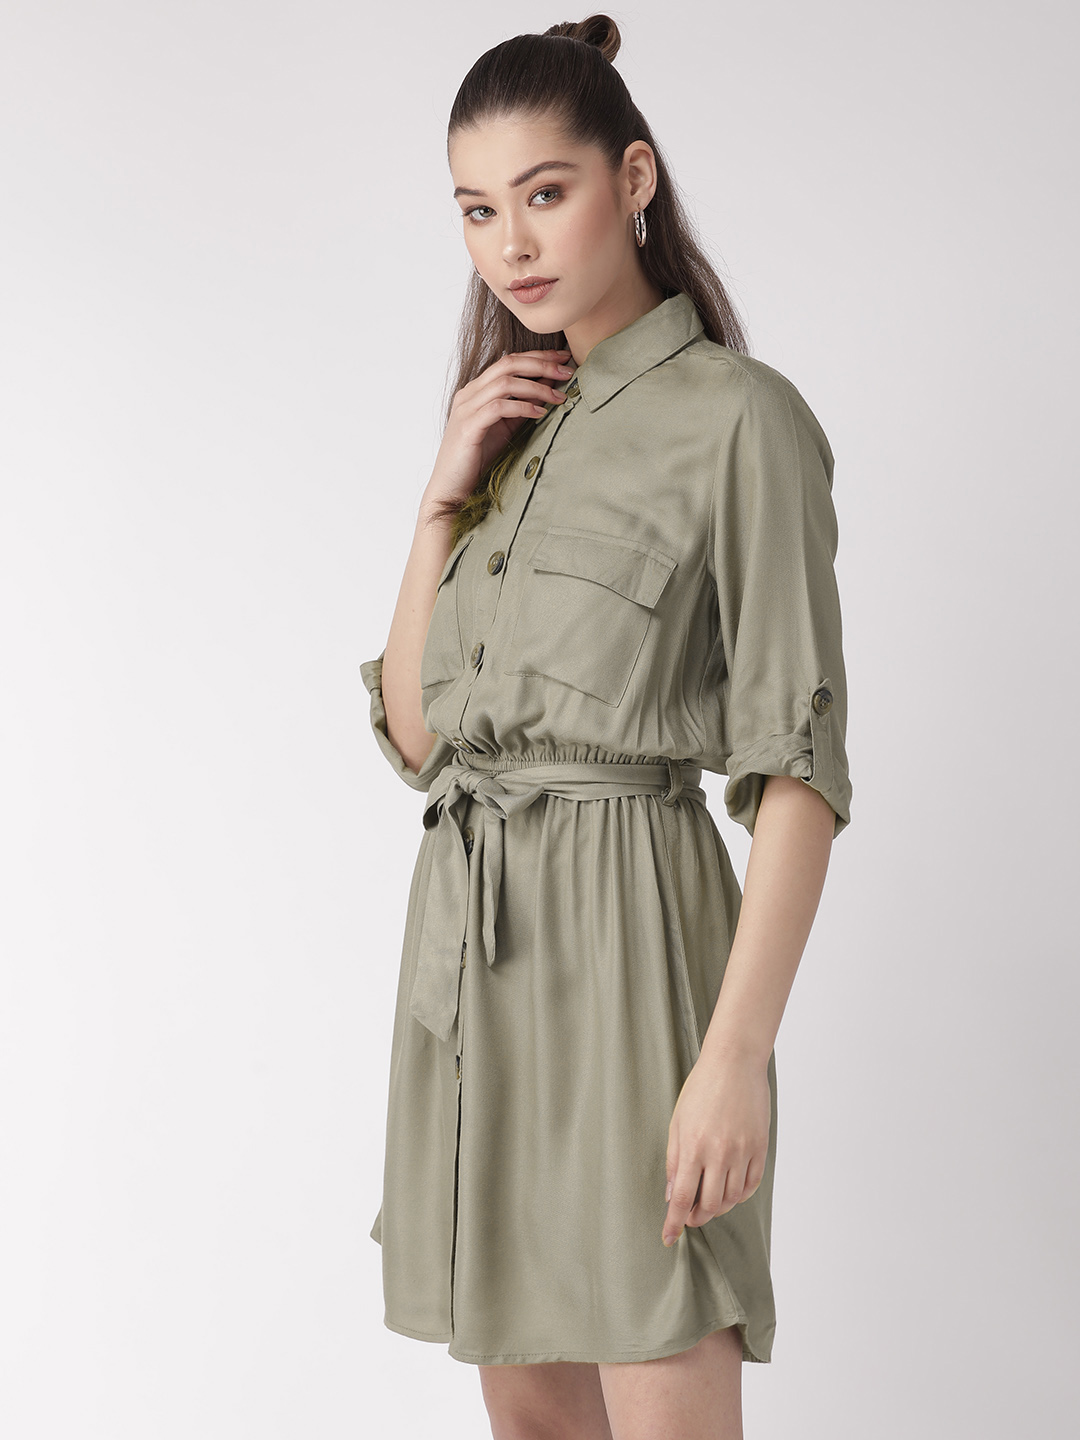 Dresses-Green The Style Breakout Dress2